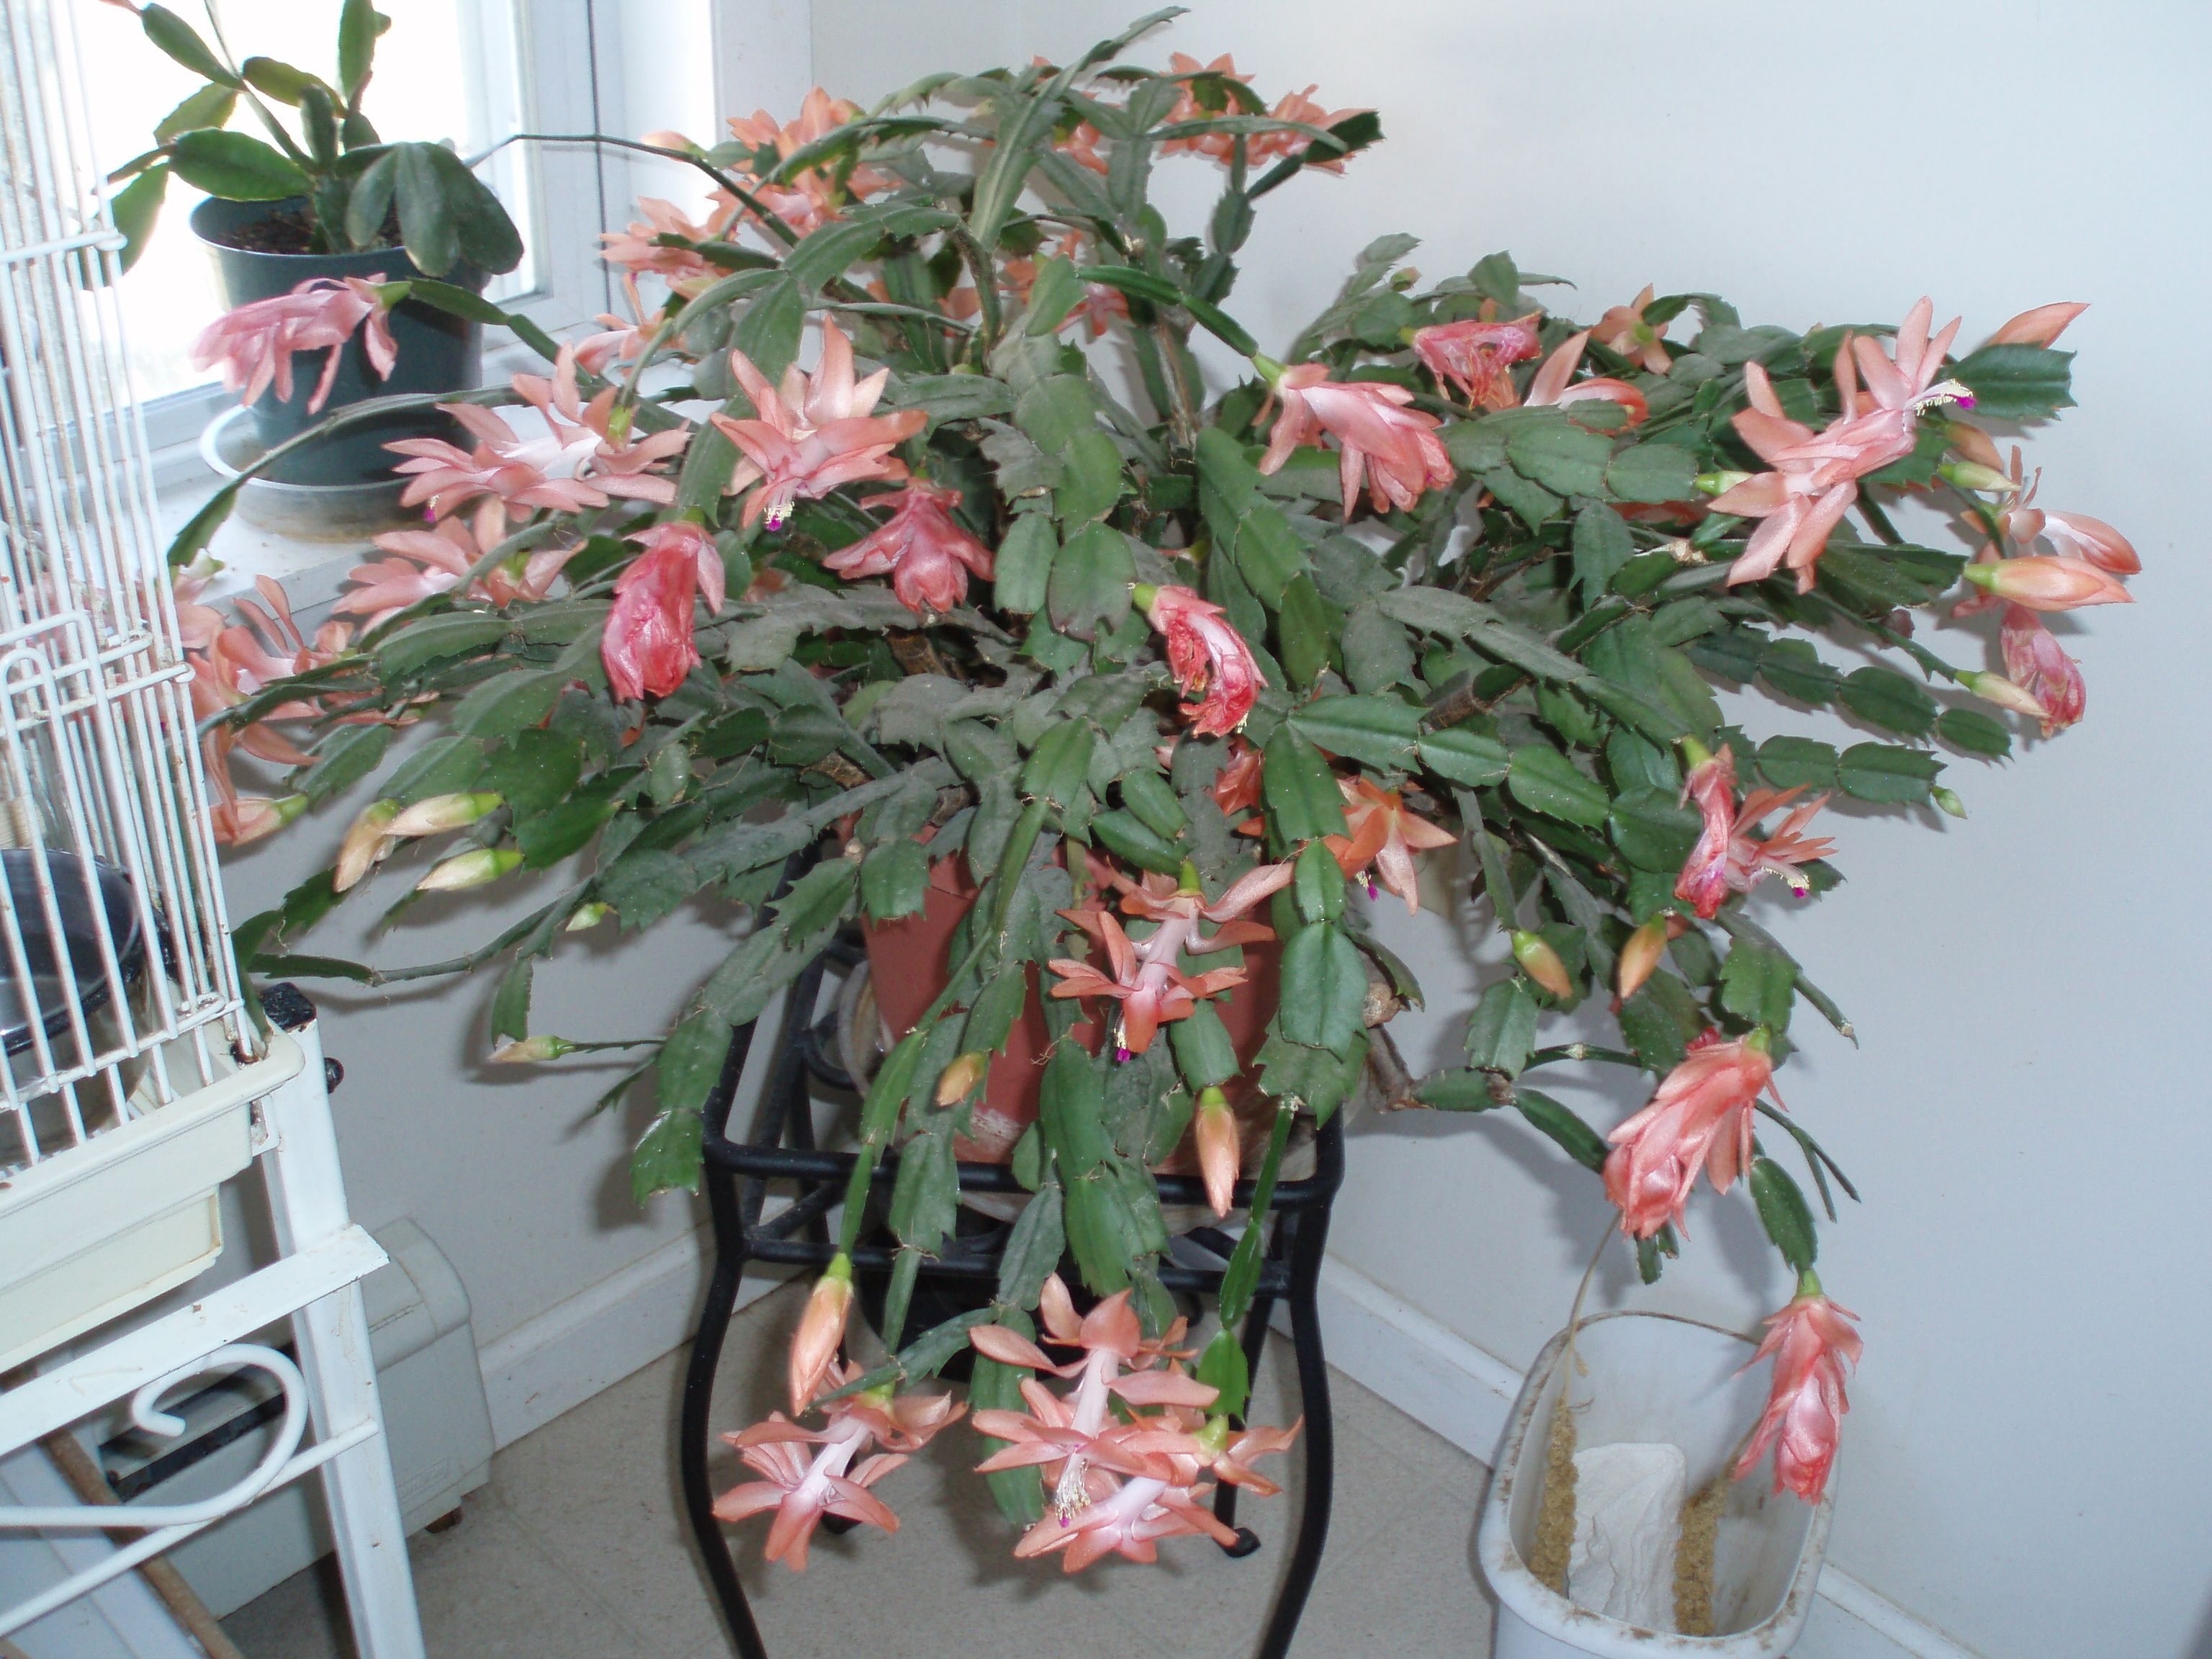 Christmas Cactus Blooming.This Is A Very Old Salmon Christmas Cactus That Blooms From